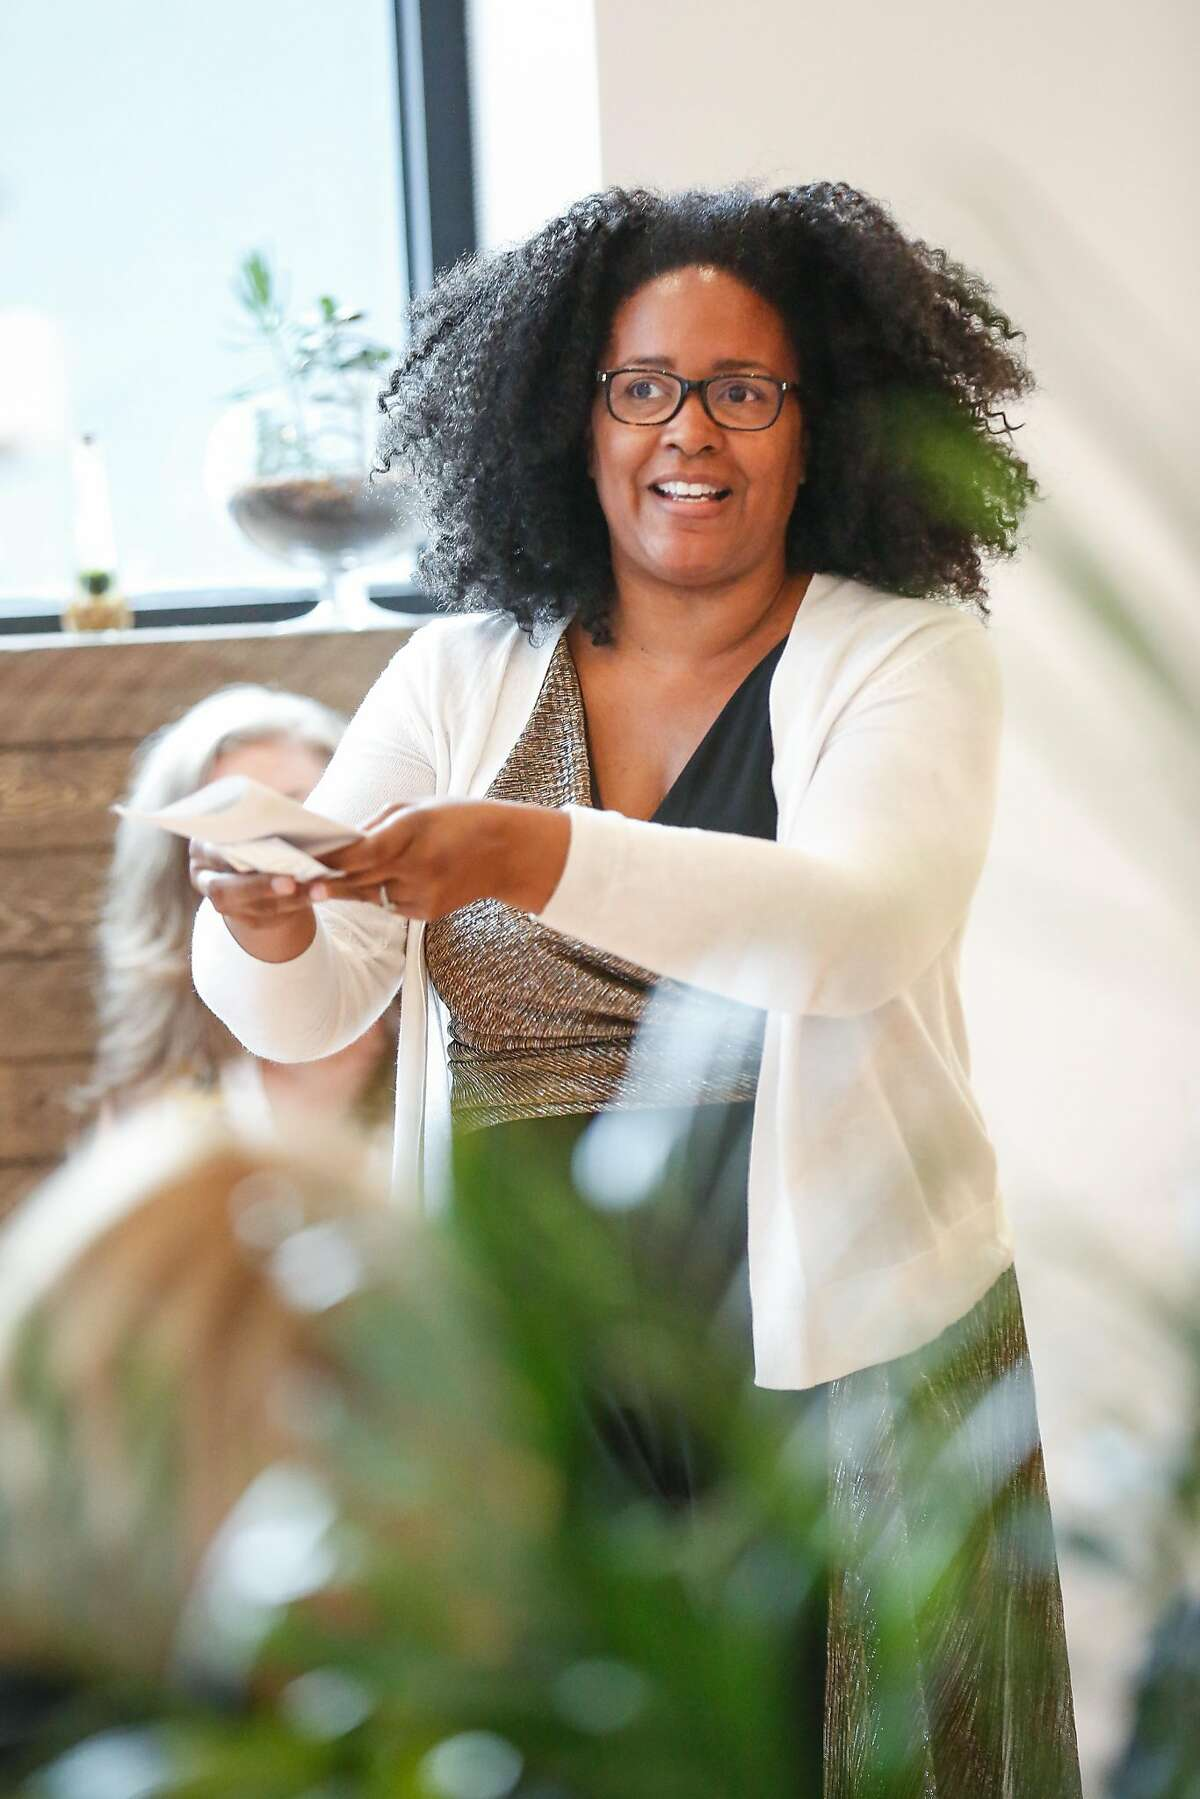 Ren� Jones, cofounder of Triple Apex, talks about her product to a group of women on Wednesday, July 25, 2018 in San Francisco, California. Ellementa organizes gatherings for women to share stories and experiences with cannabis and CBD and learn from experts in the field and discover new products.